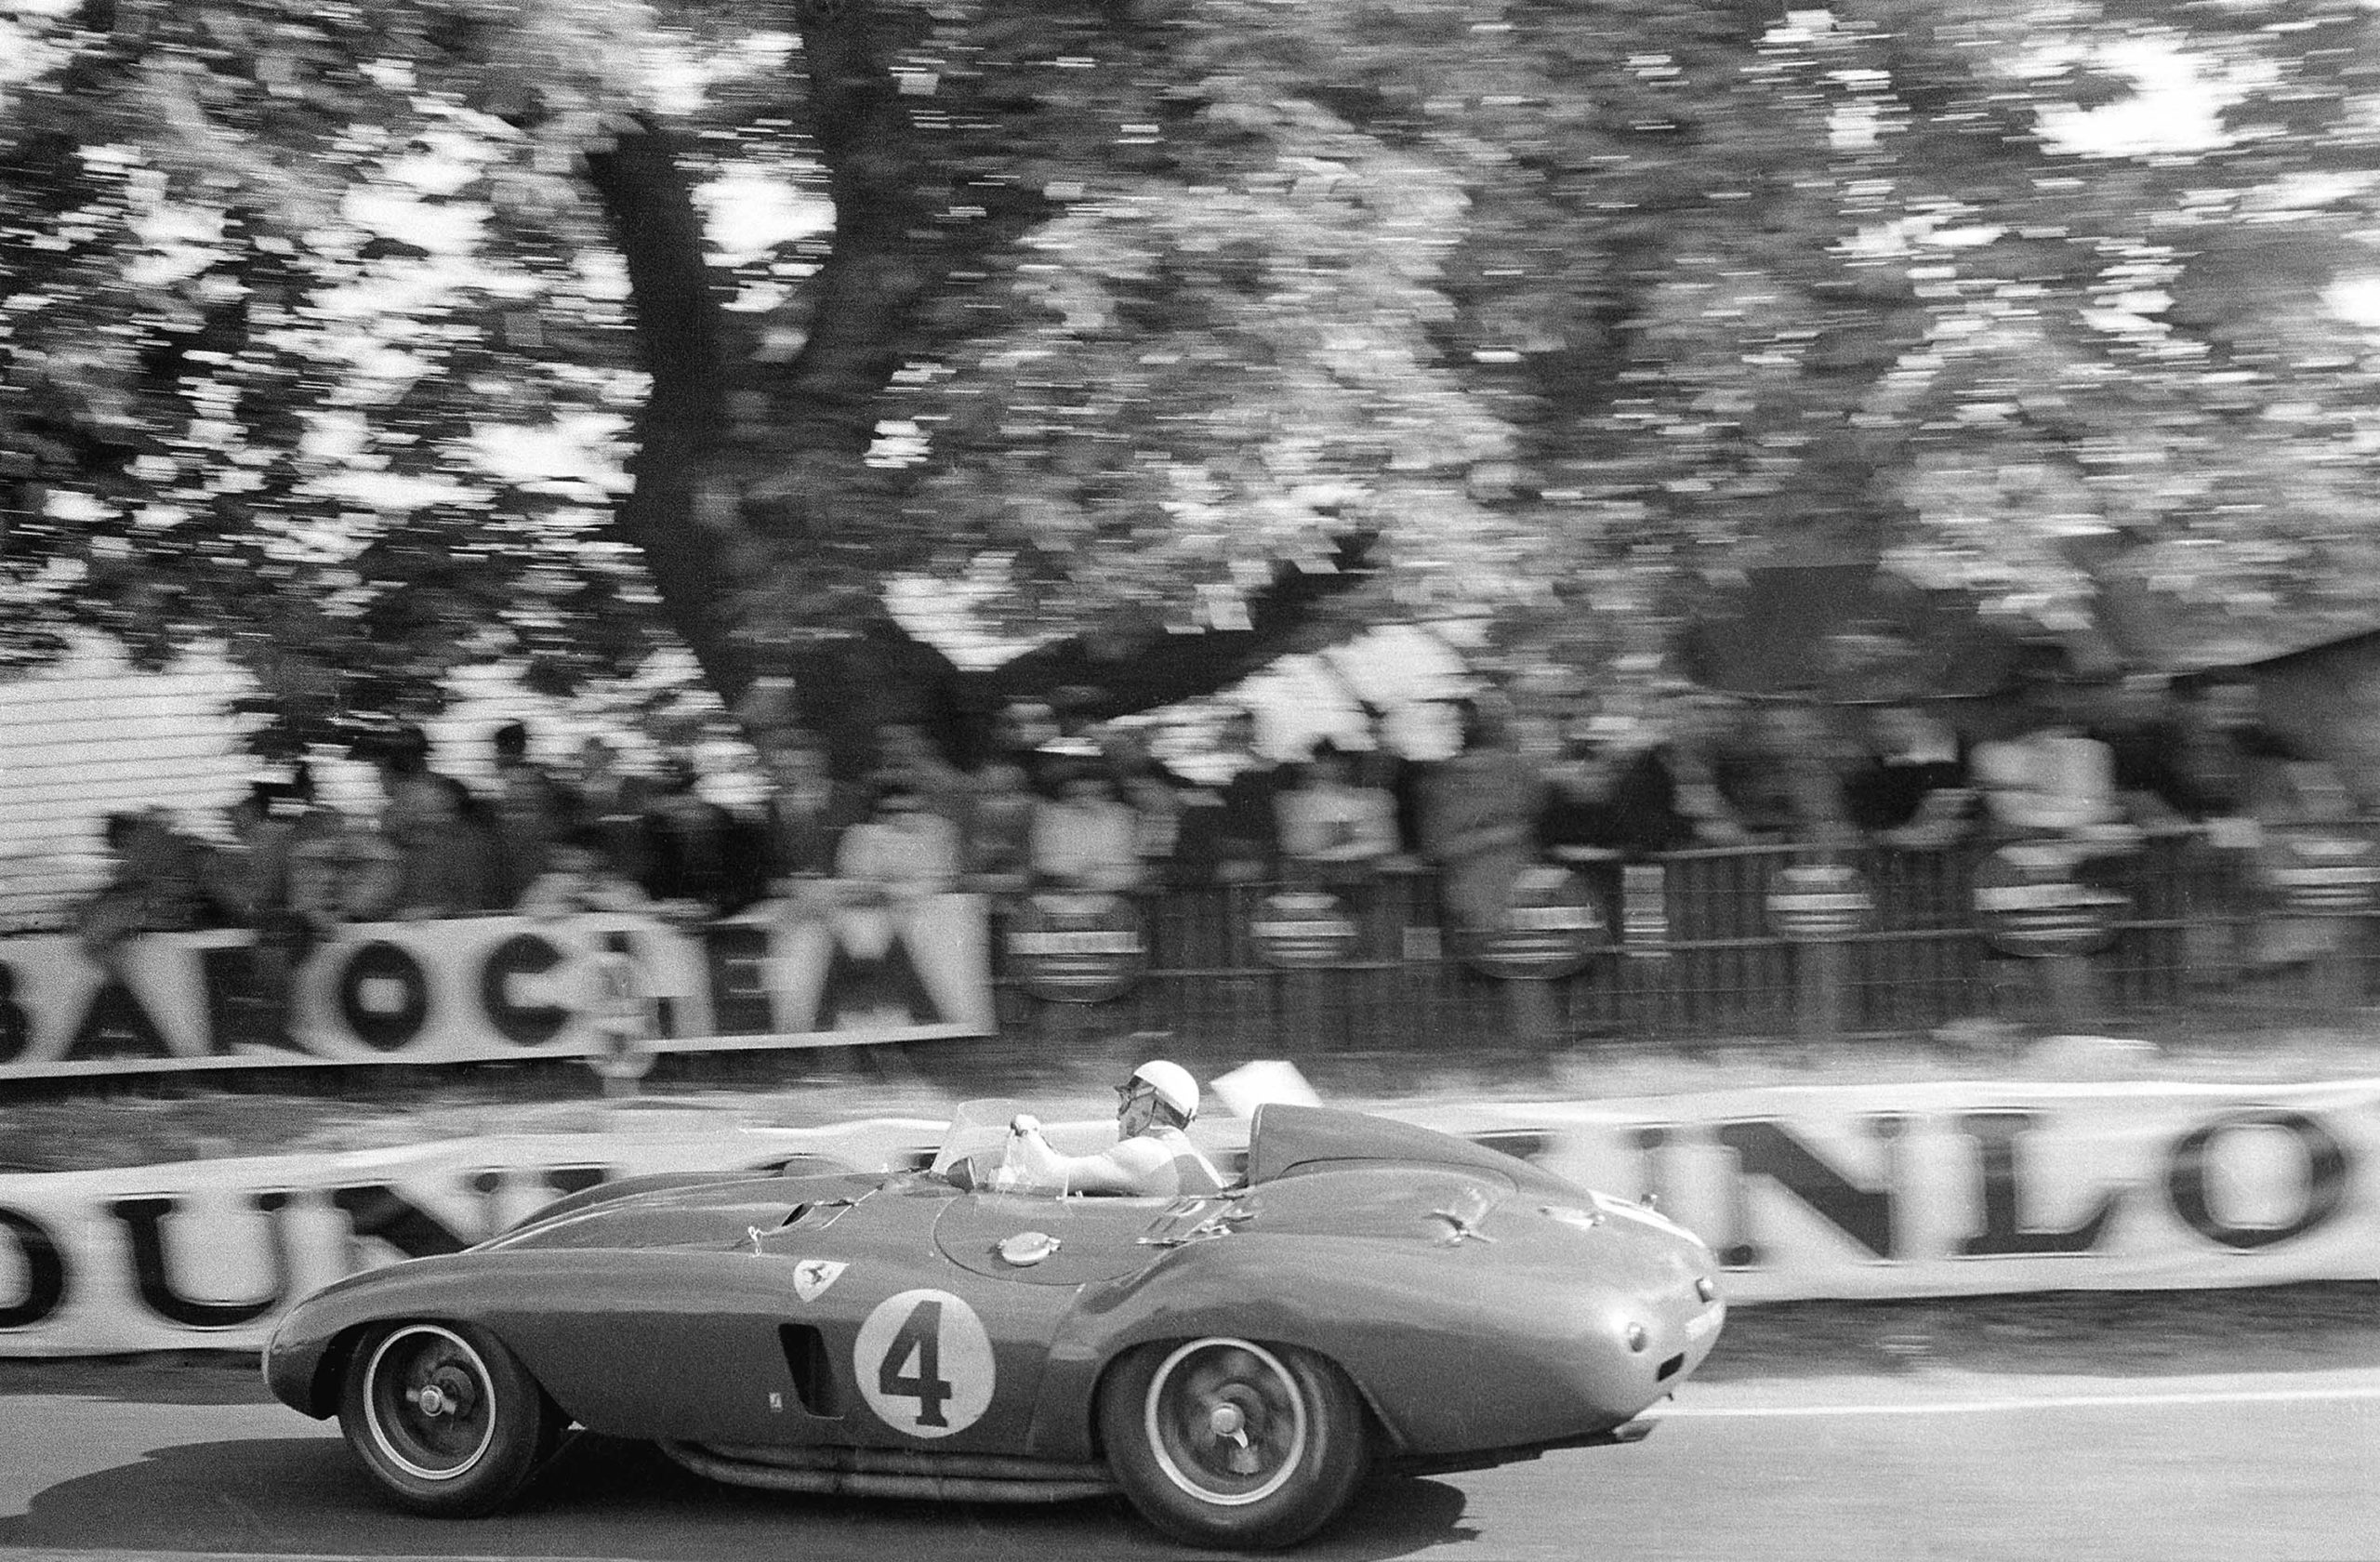 Italian driver Eugenio Castellotti at Tertre Rouge in the early laps of the 24 Hours of Le Mans race, June 1955. He shared this Ferrari 121LM with Paolo Marzotto. (Photo by Klemantaski Collection/Getty Images)